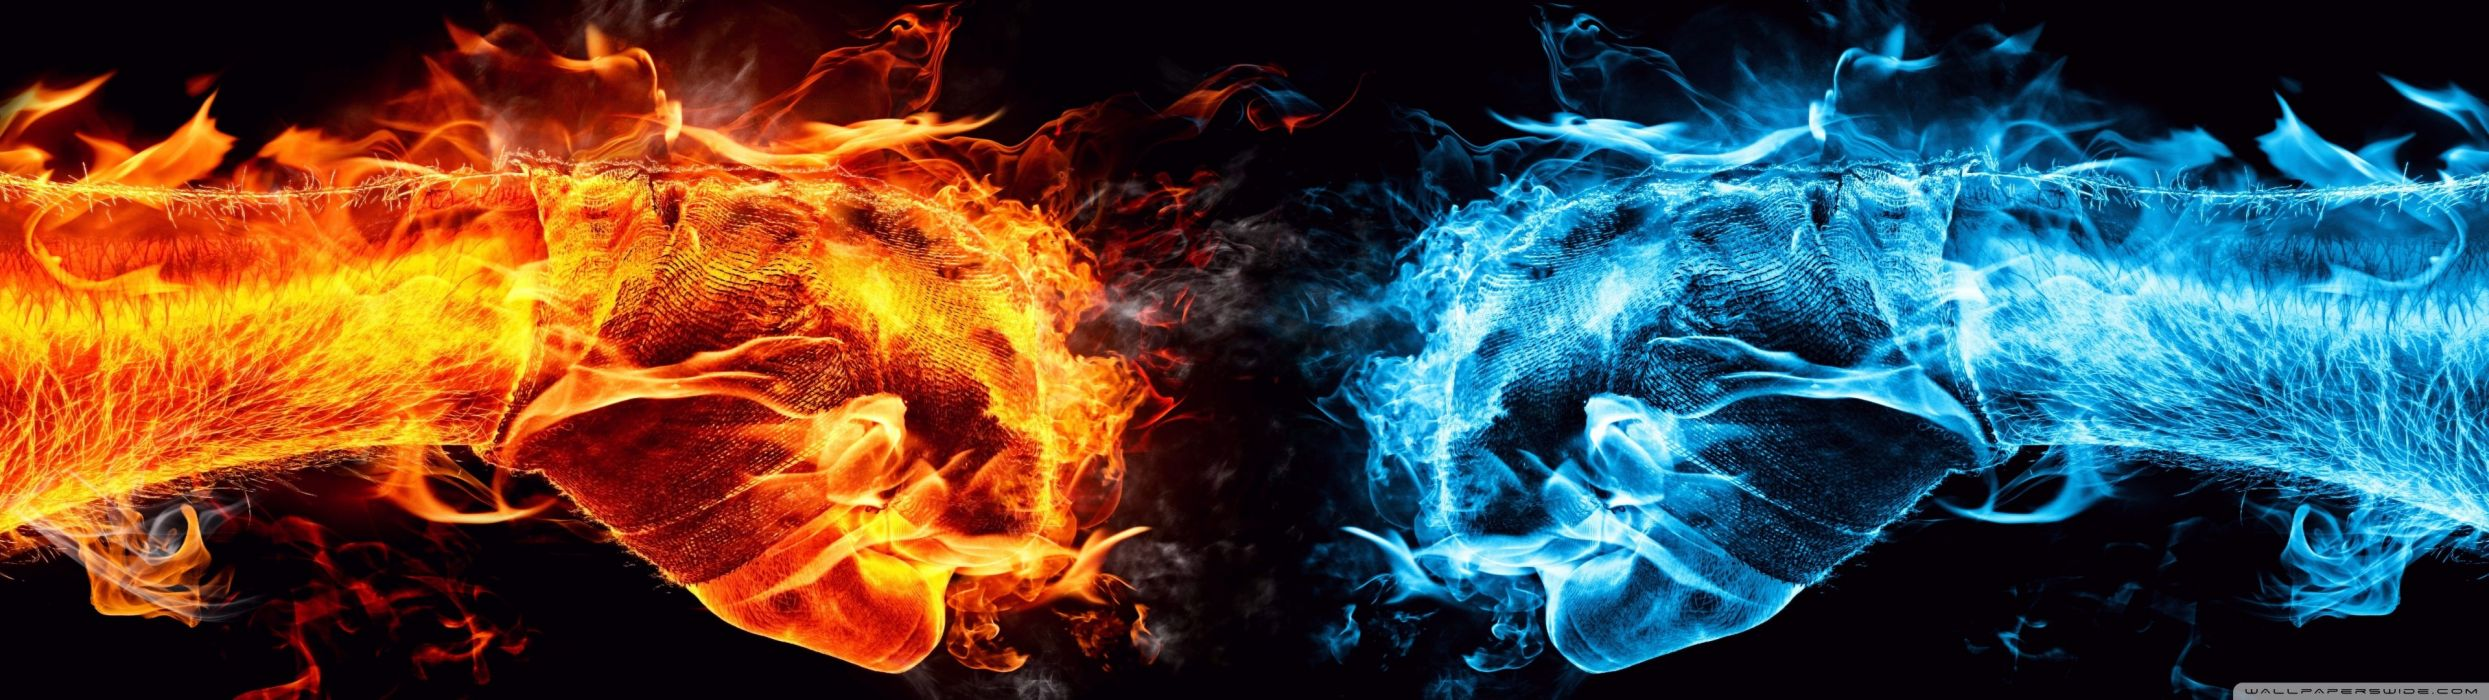 dual monitor screen multi multiple fire feu blue bleu orange flamme flame wallpaper